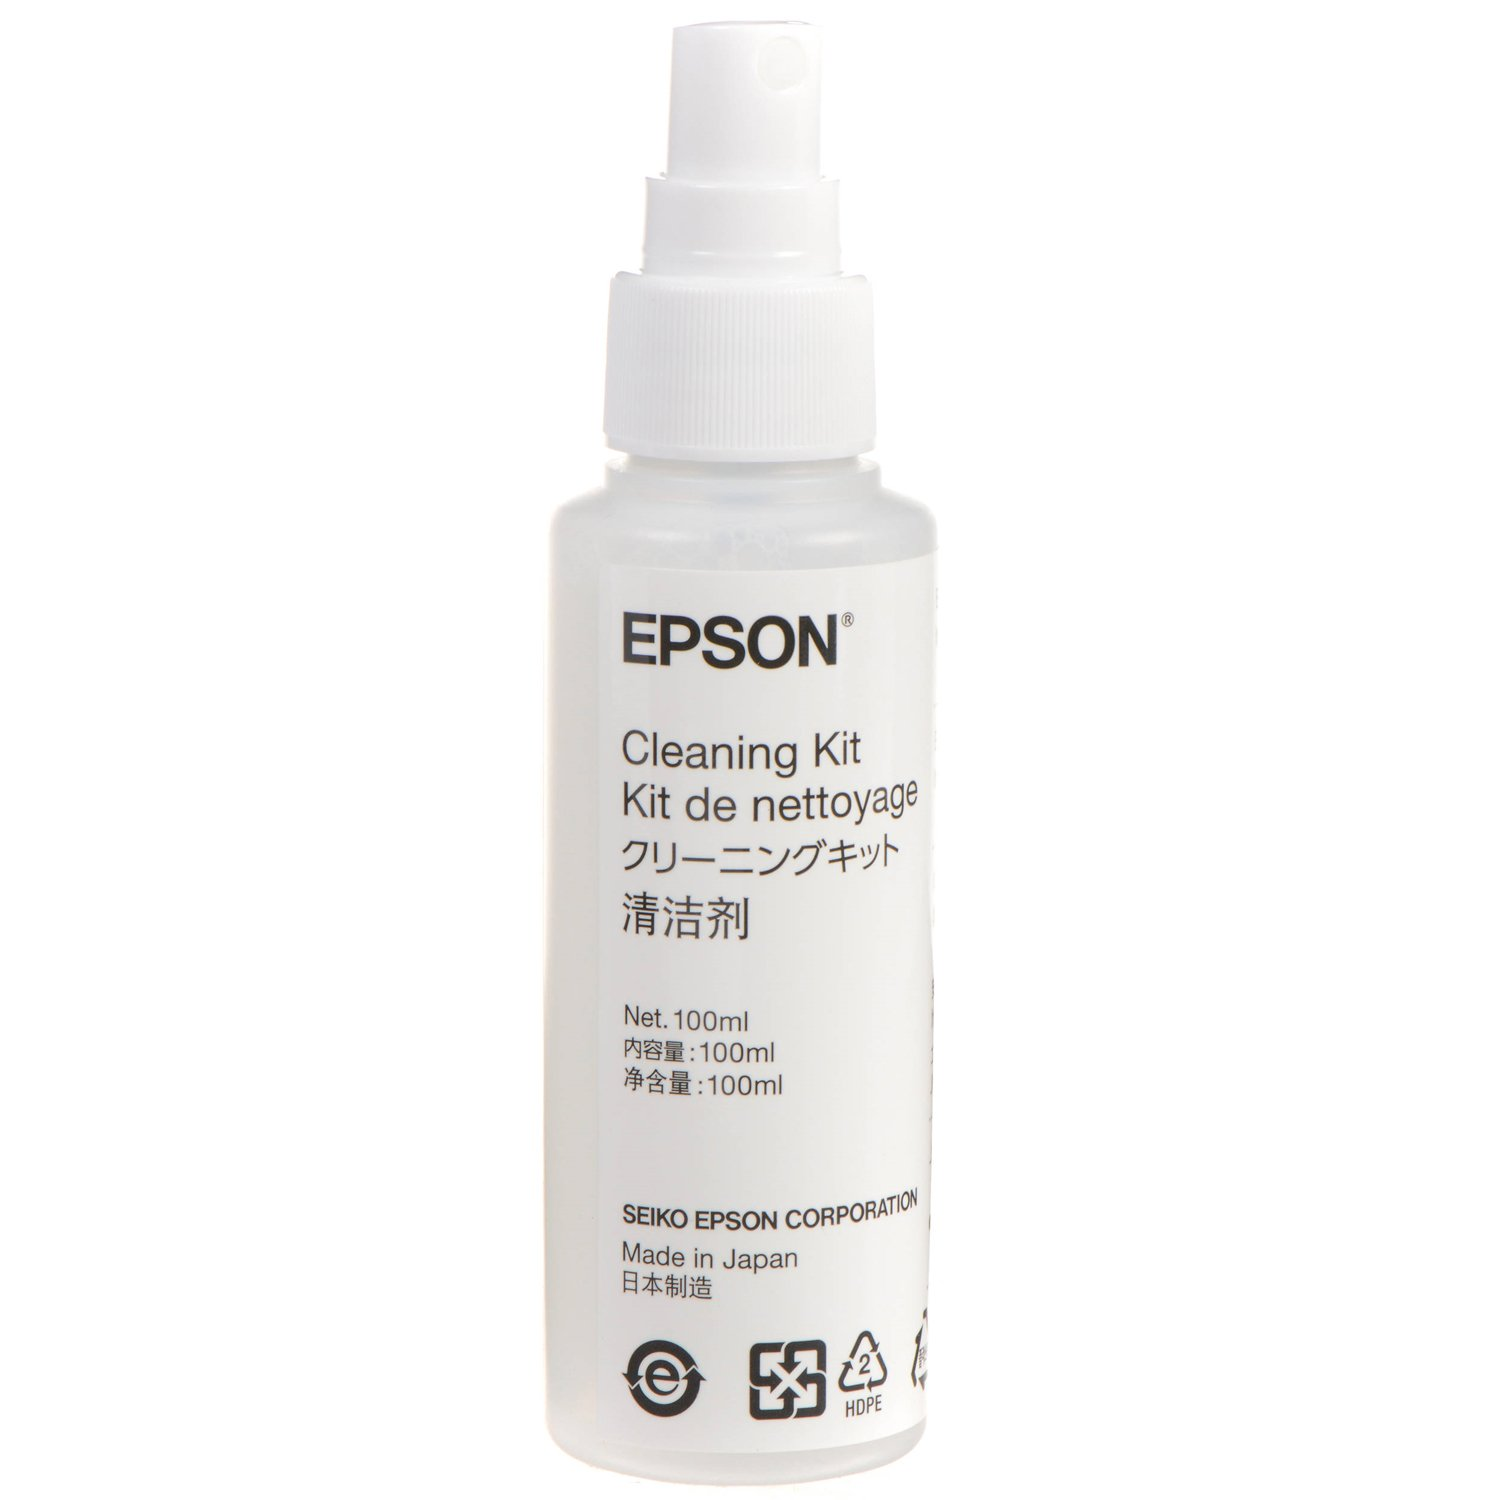 Epson 4T8626 Cleaning Kit - White